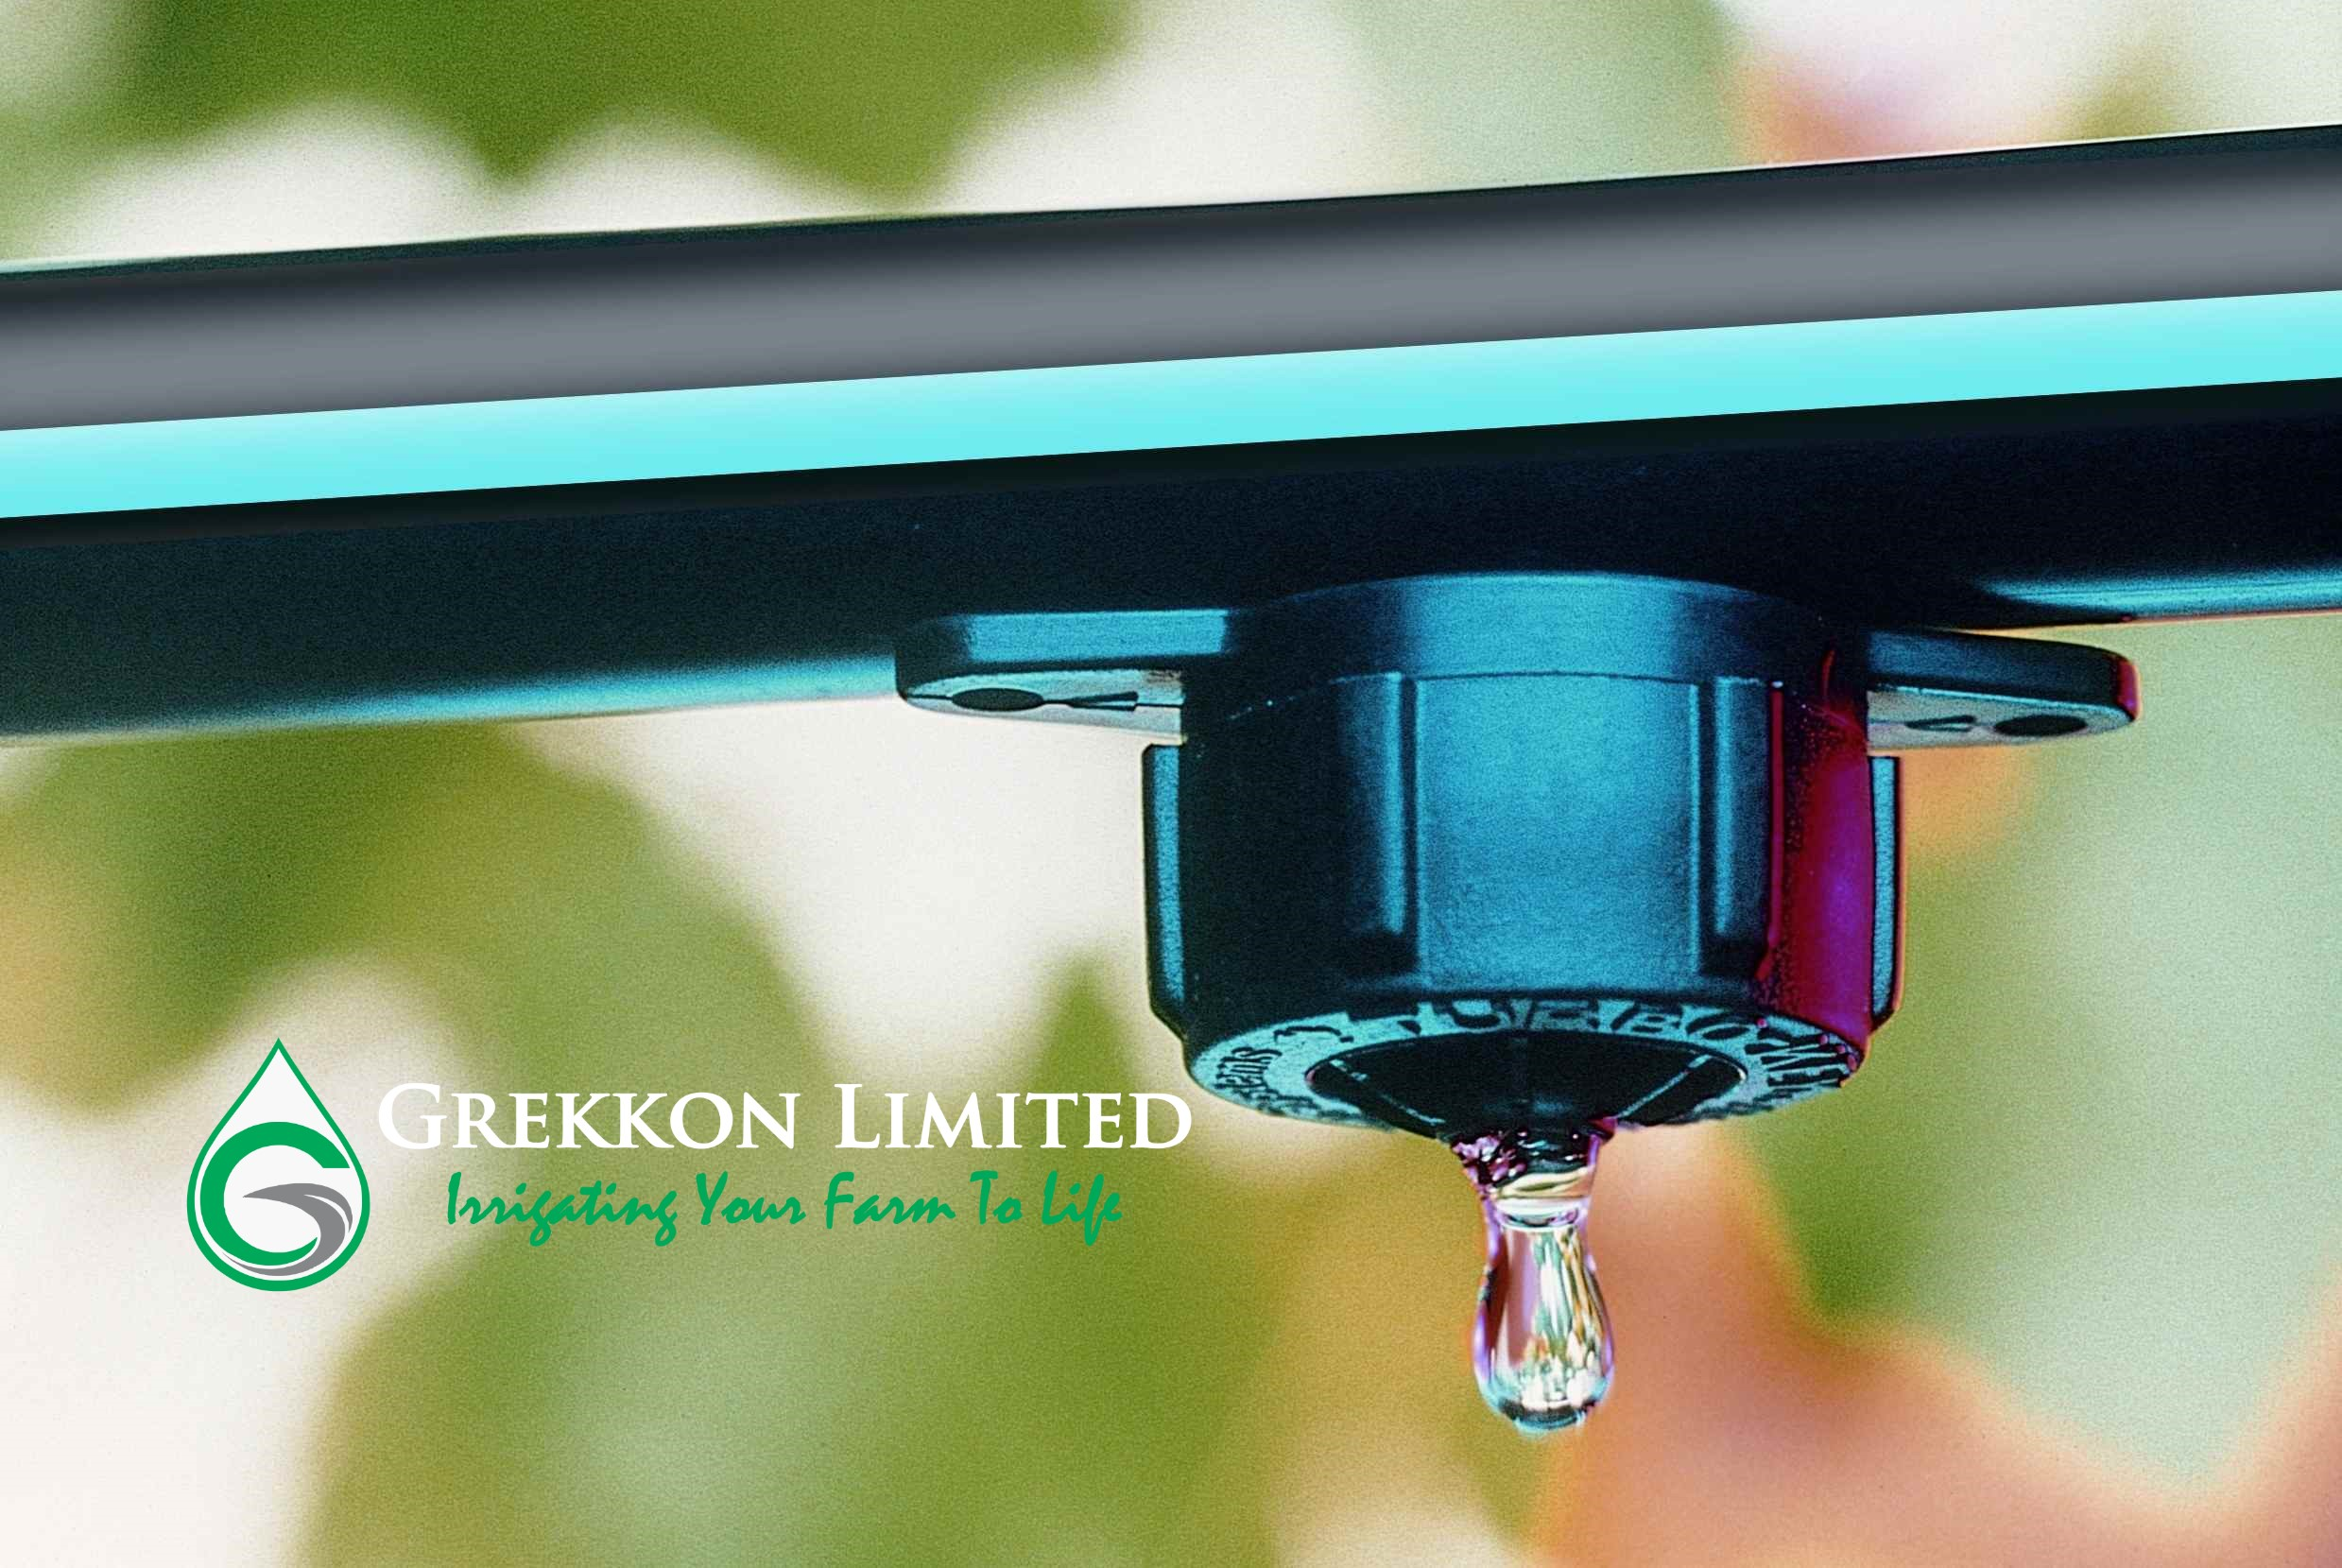 HDPE pipes. 16mm by Grekkon Limited